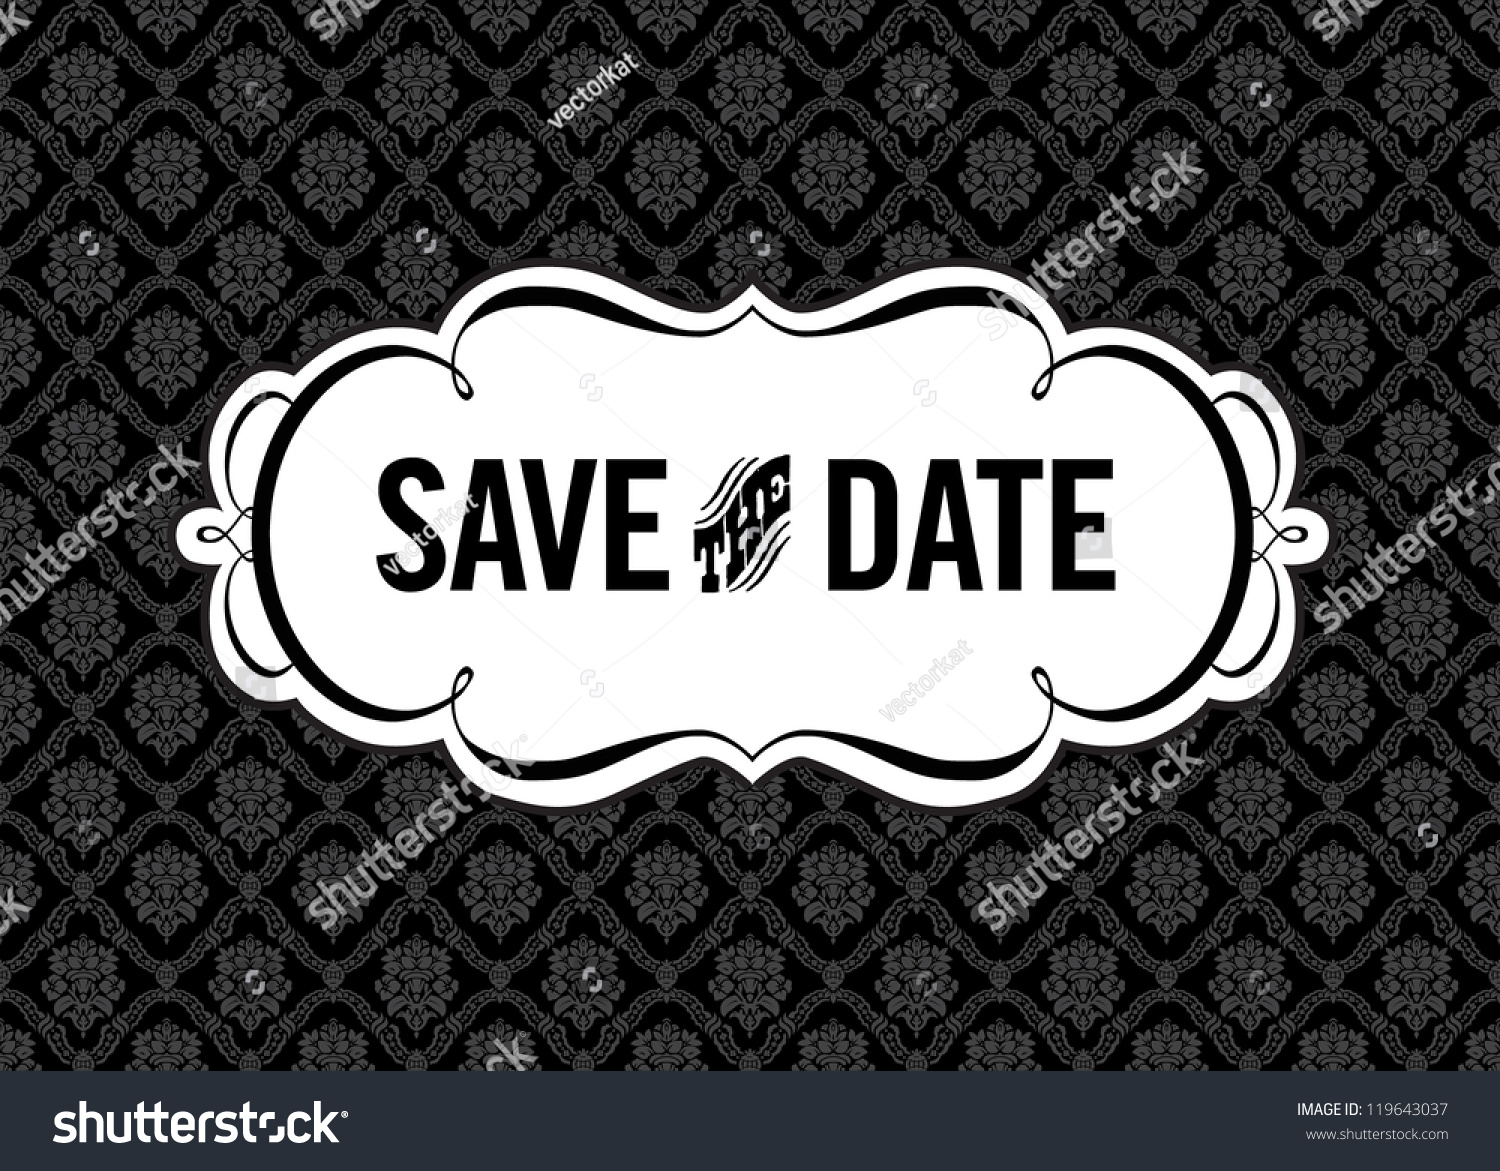 vector save the date ornate frame easy to edit perfect for invitations or announcements